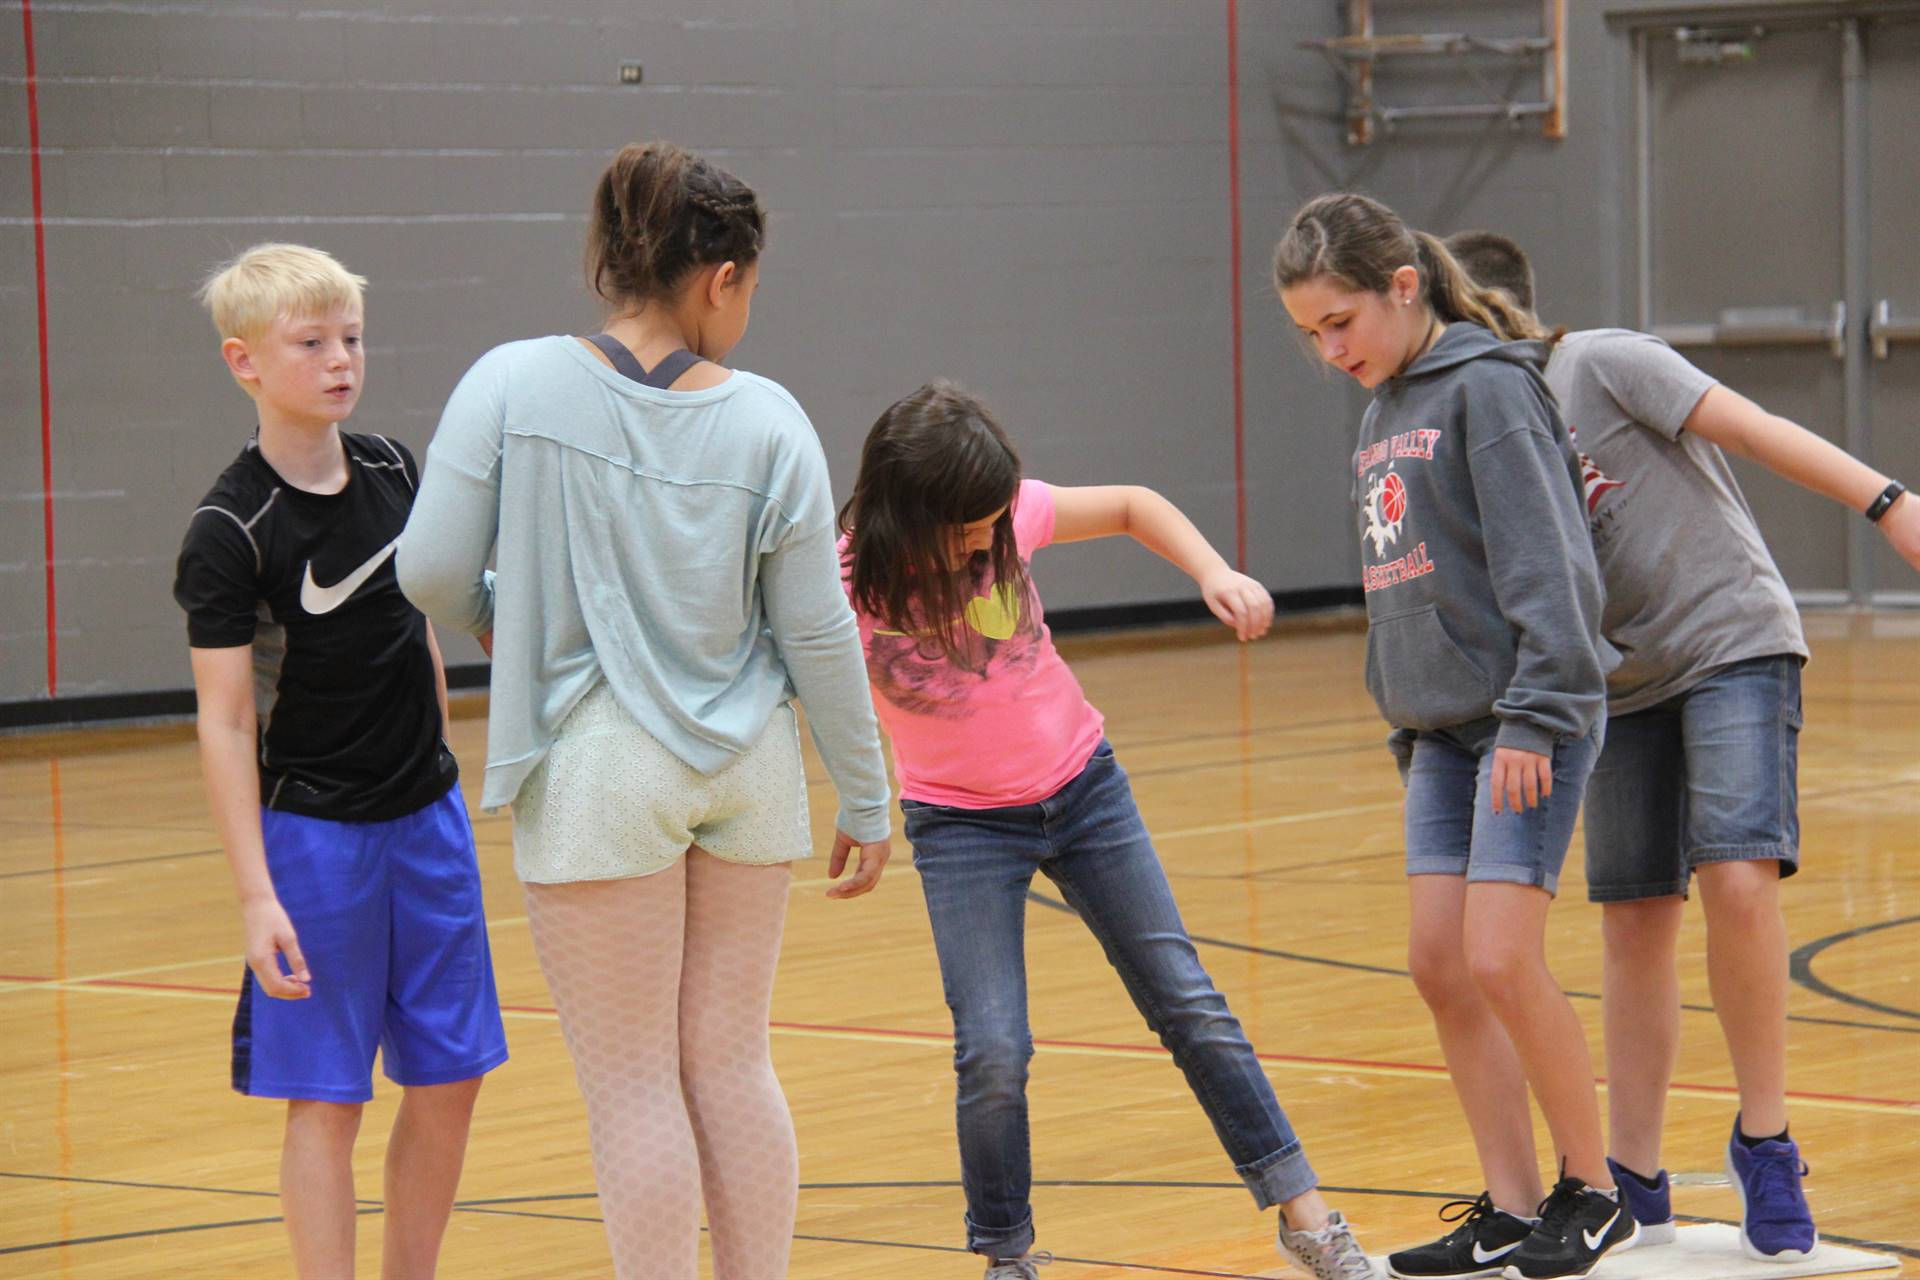 middle school students learn team work skills by playing a game of lava